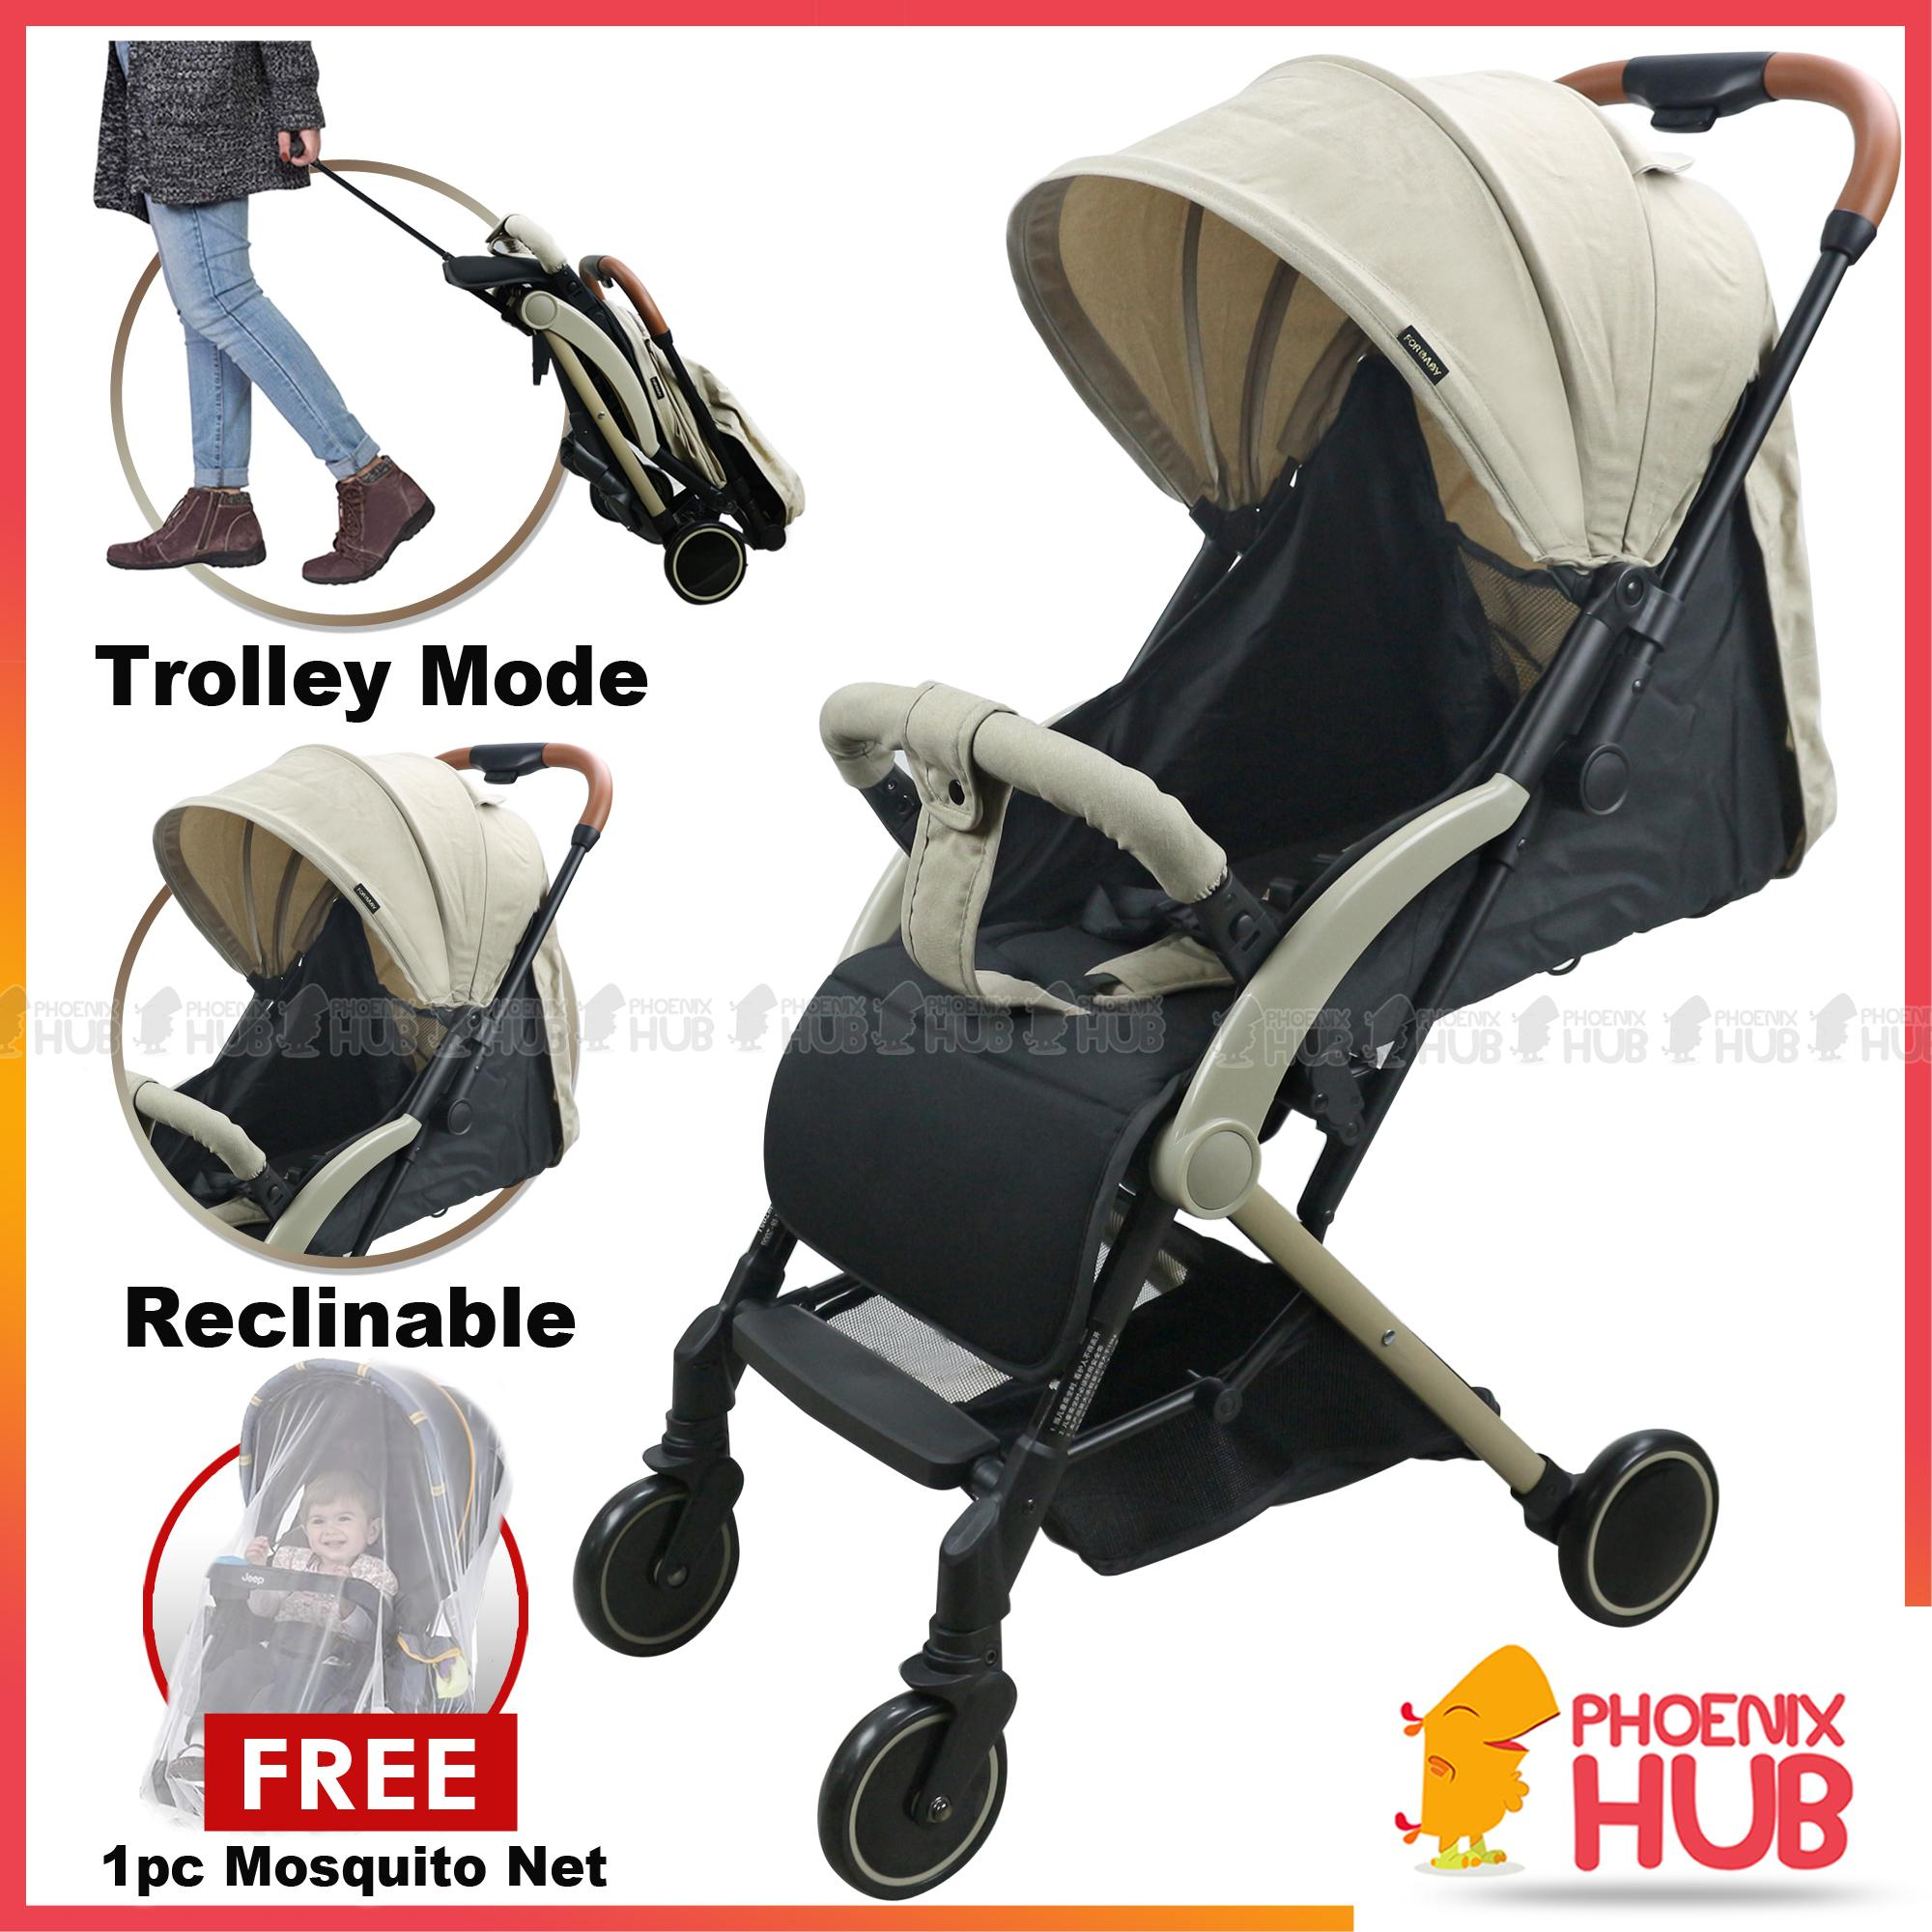 Newborn Umbrella Stroller Standard Baby Multifunctional Baby Shock Absorber Cart